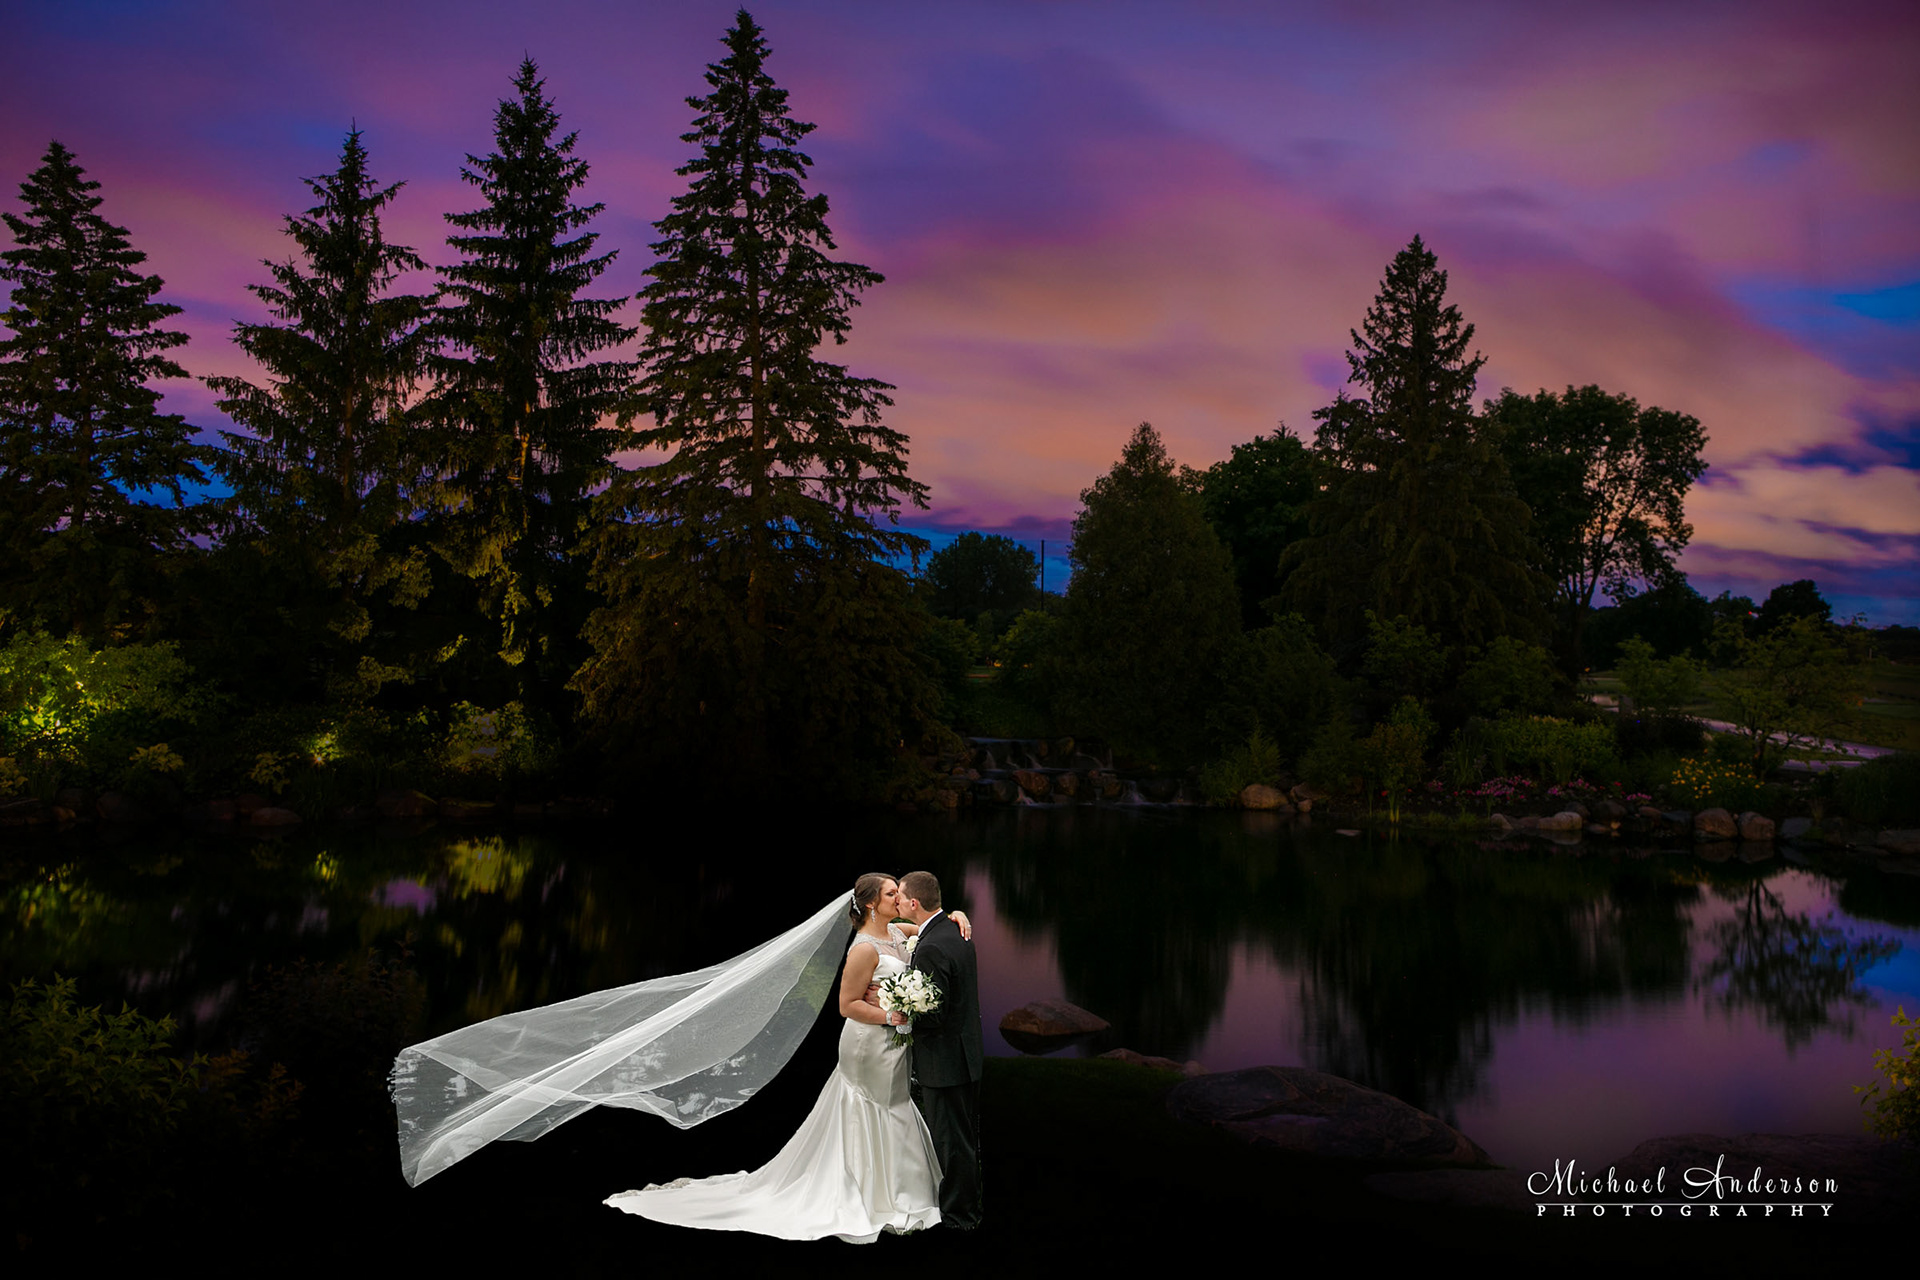 Light Painting Photography by Michael Anderson - Wedding ... for Light Painting Photography Wedding  45ifm